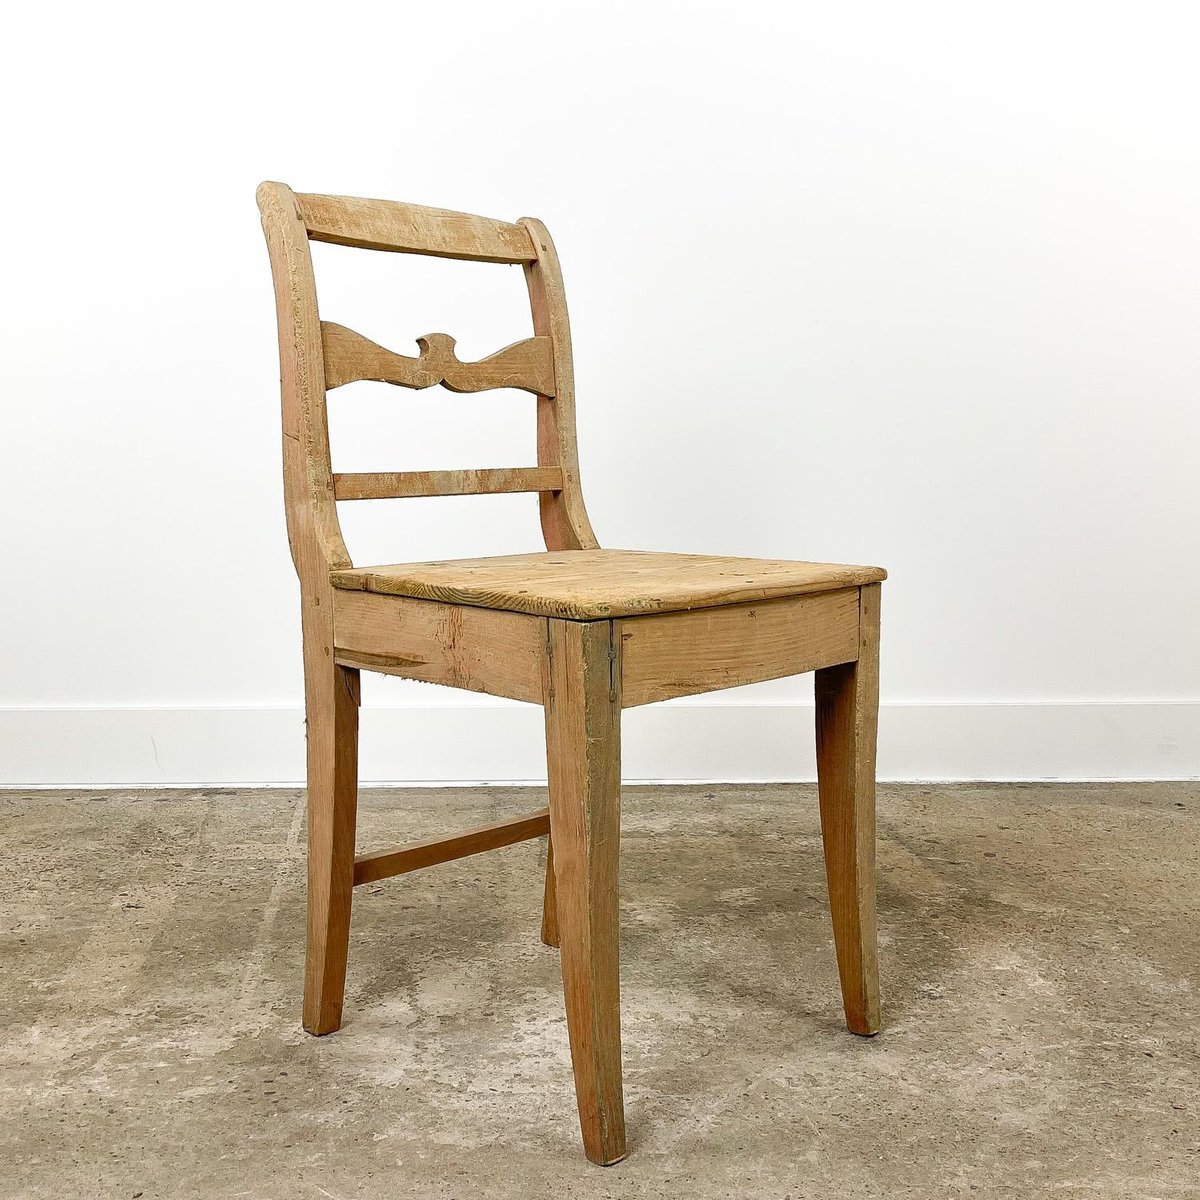 Antique Swedish Pine Farmhouse Chair For Sale At Pamono